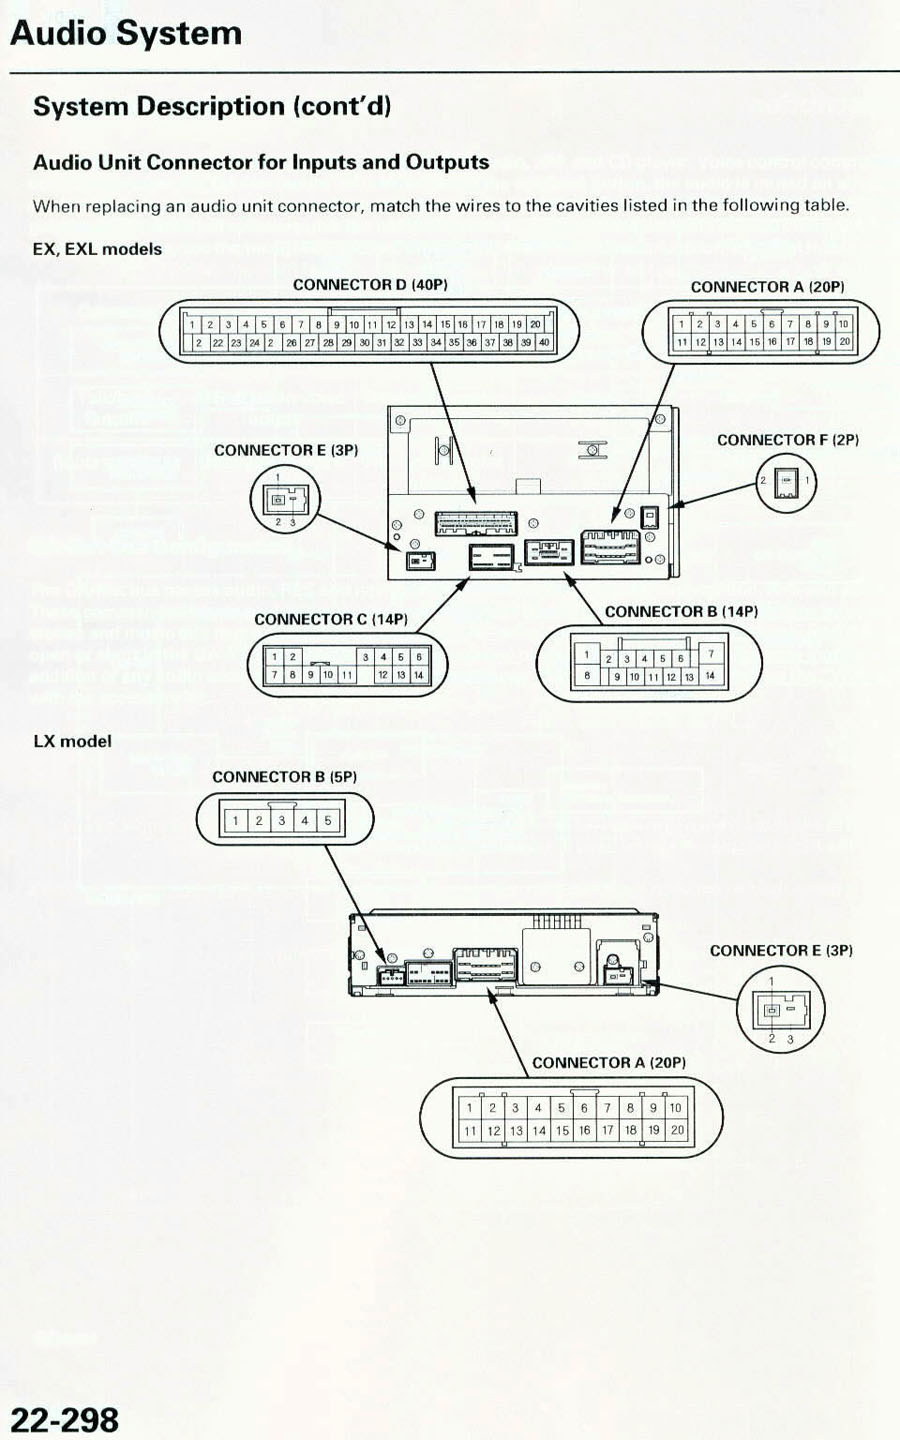 32969d1200063279 re factory subwoofer aftermarket hu audio_connector 2006 re factory subwoofer and aftermarket hu honda pilot honda 2011 honda pilot wiring diagram at bakdesigns.co